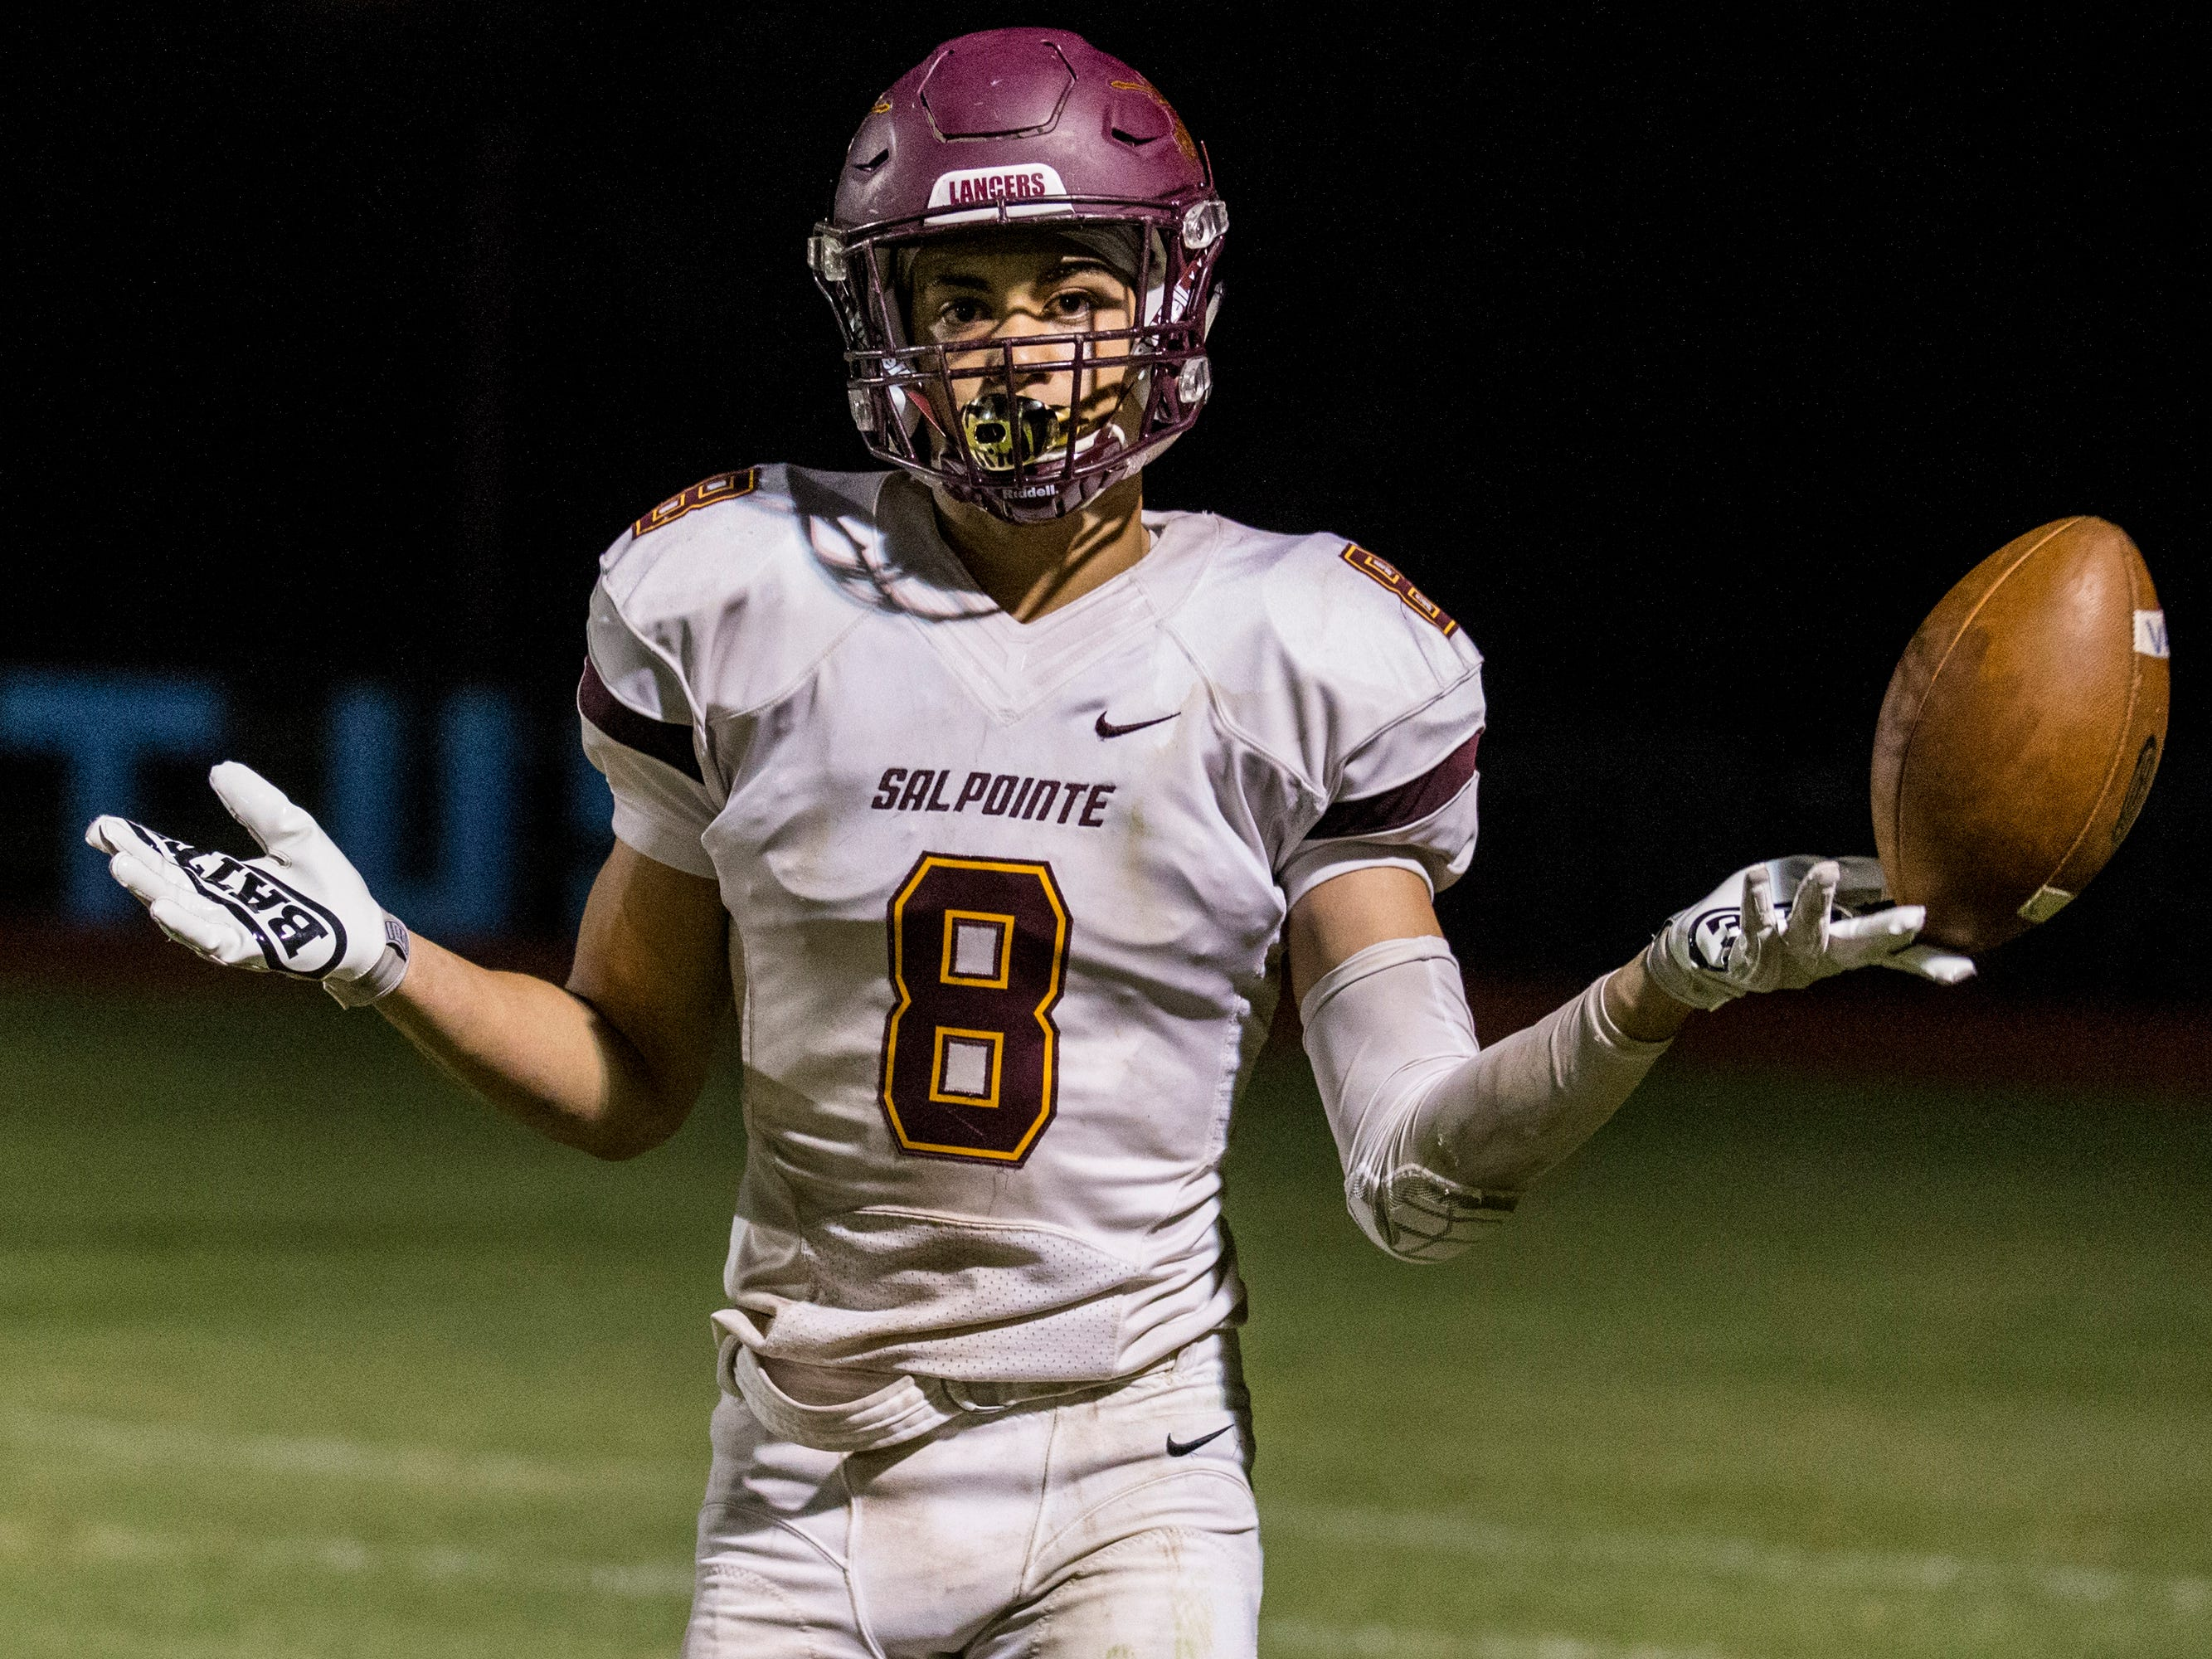 Salpointe's Lathan Ransom celebrates after a touchdown reception against in the 4th quarter on Friday, Sept. 14, 2018, at Cactus High School in Glendale, Ariz.#azhsfb